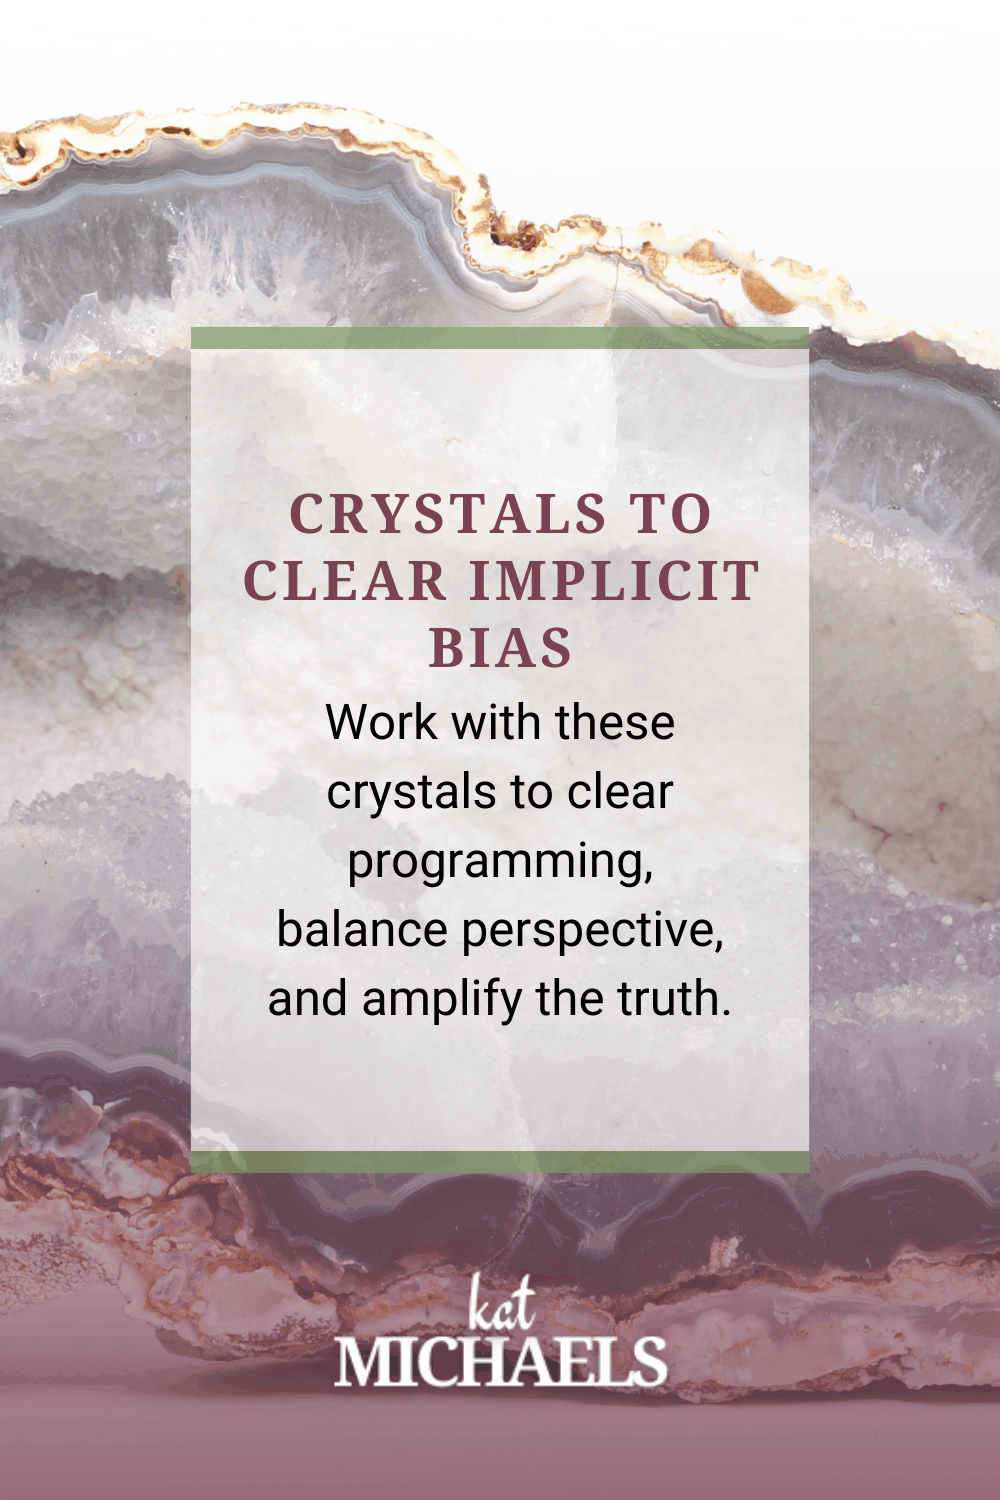 Crystals to Clear Implicit Bias